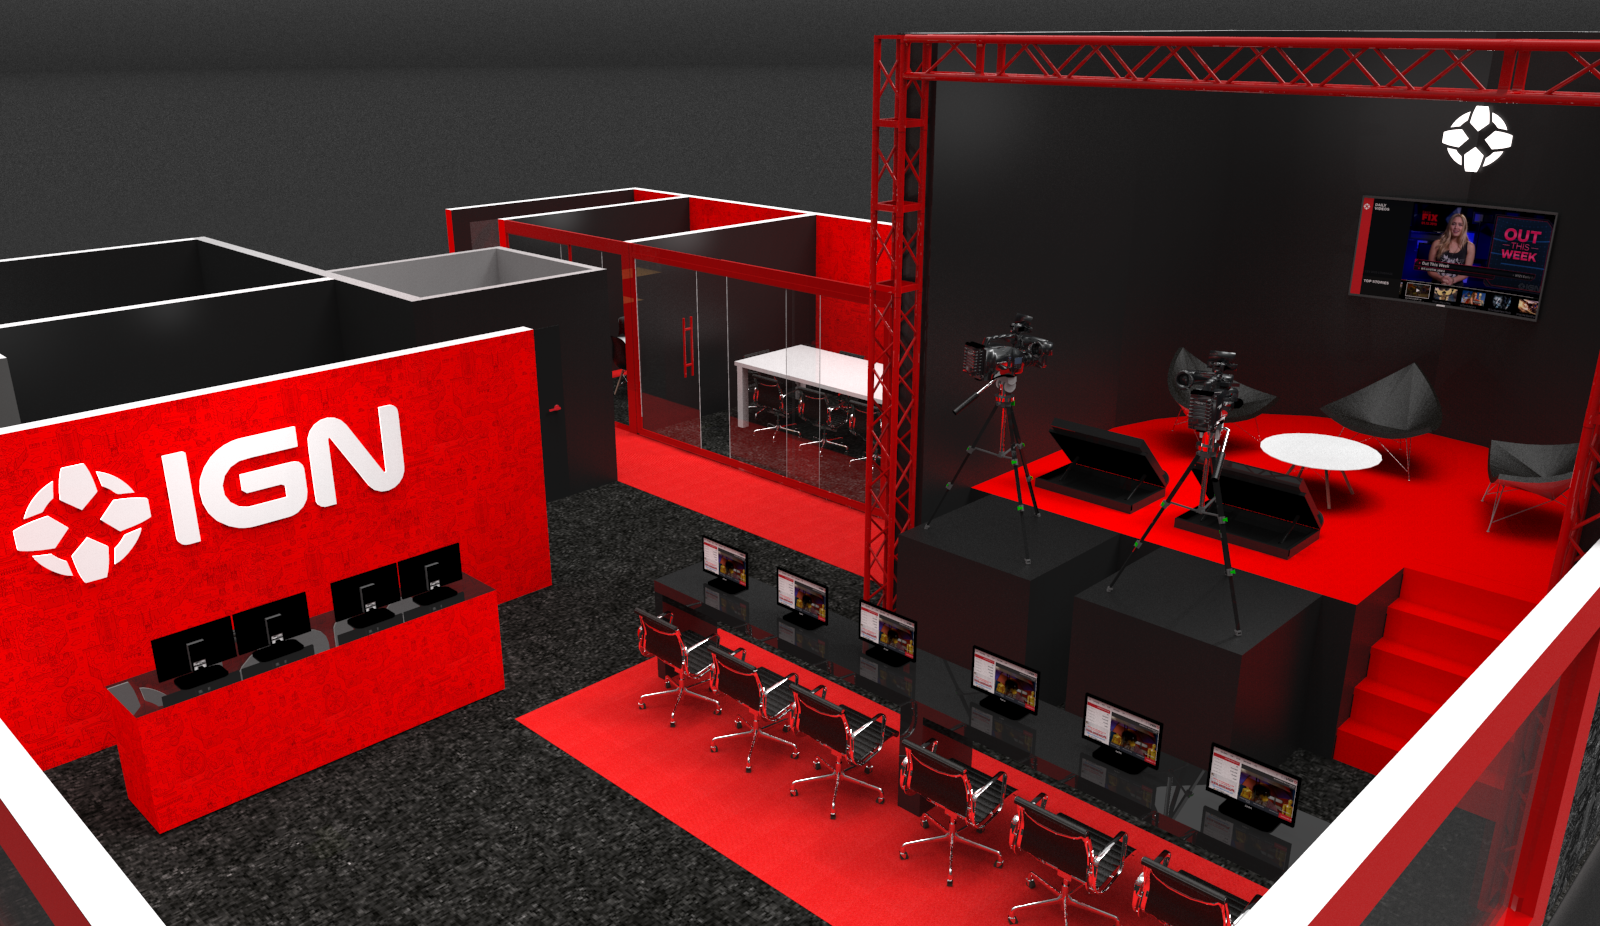 IGN_E3_Booth_R3_Opt2.13